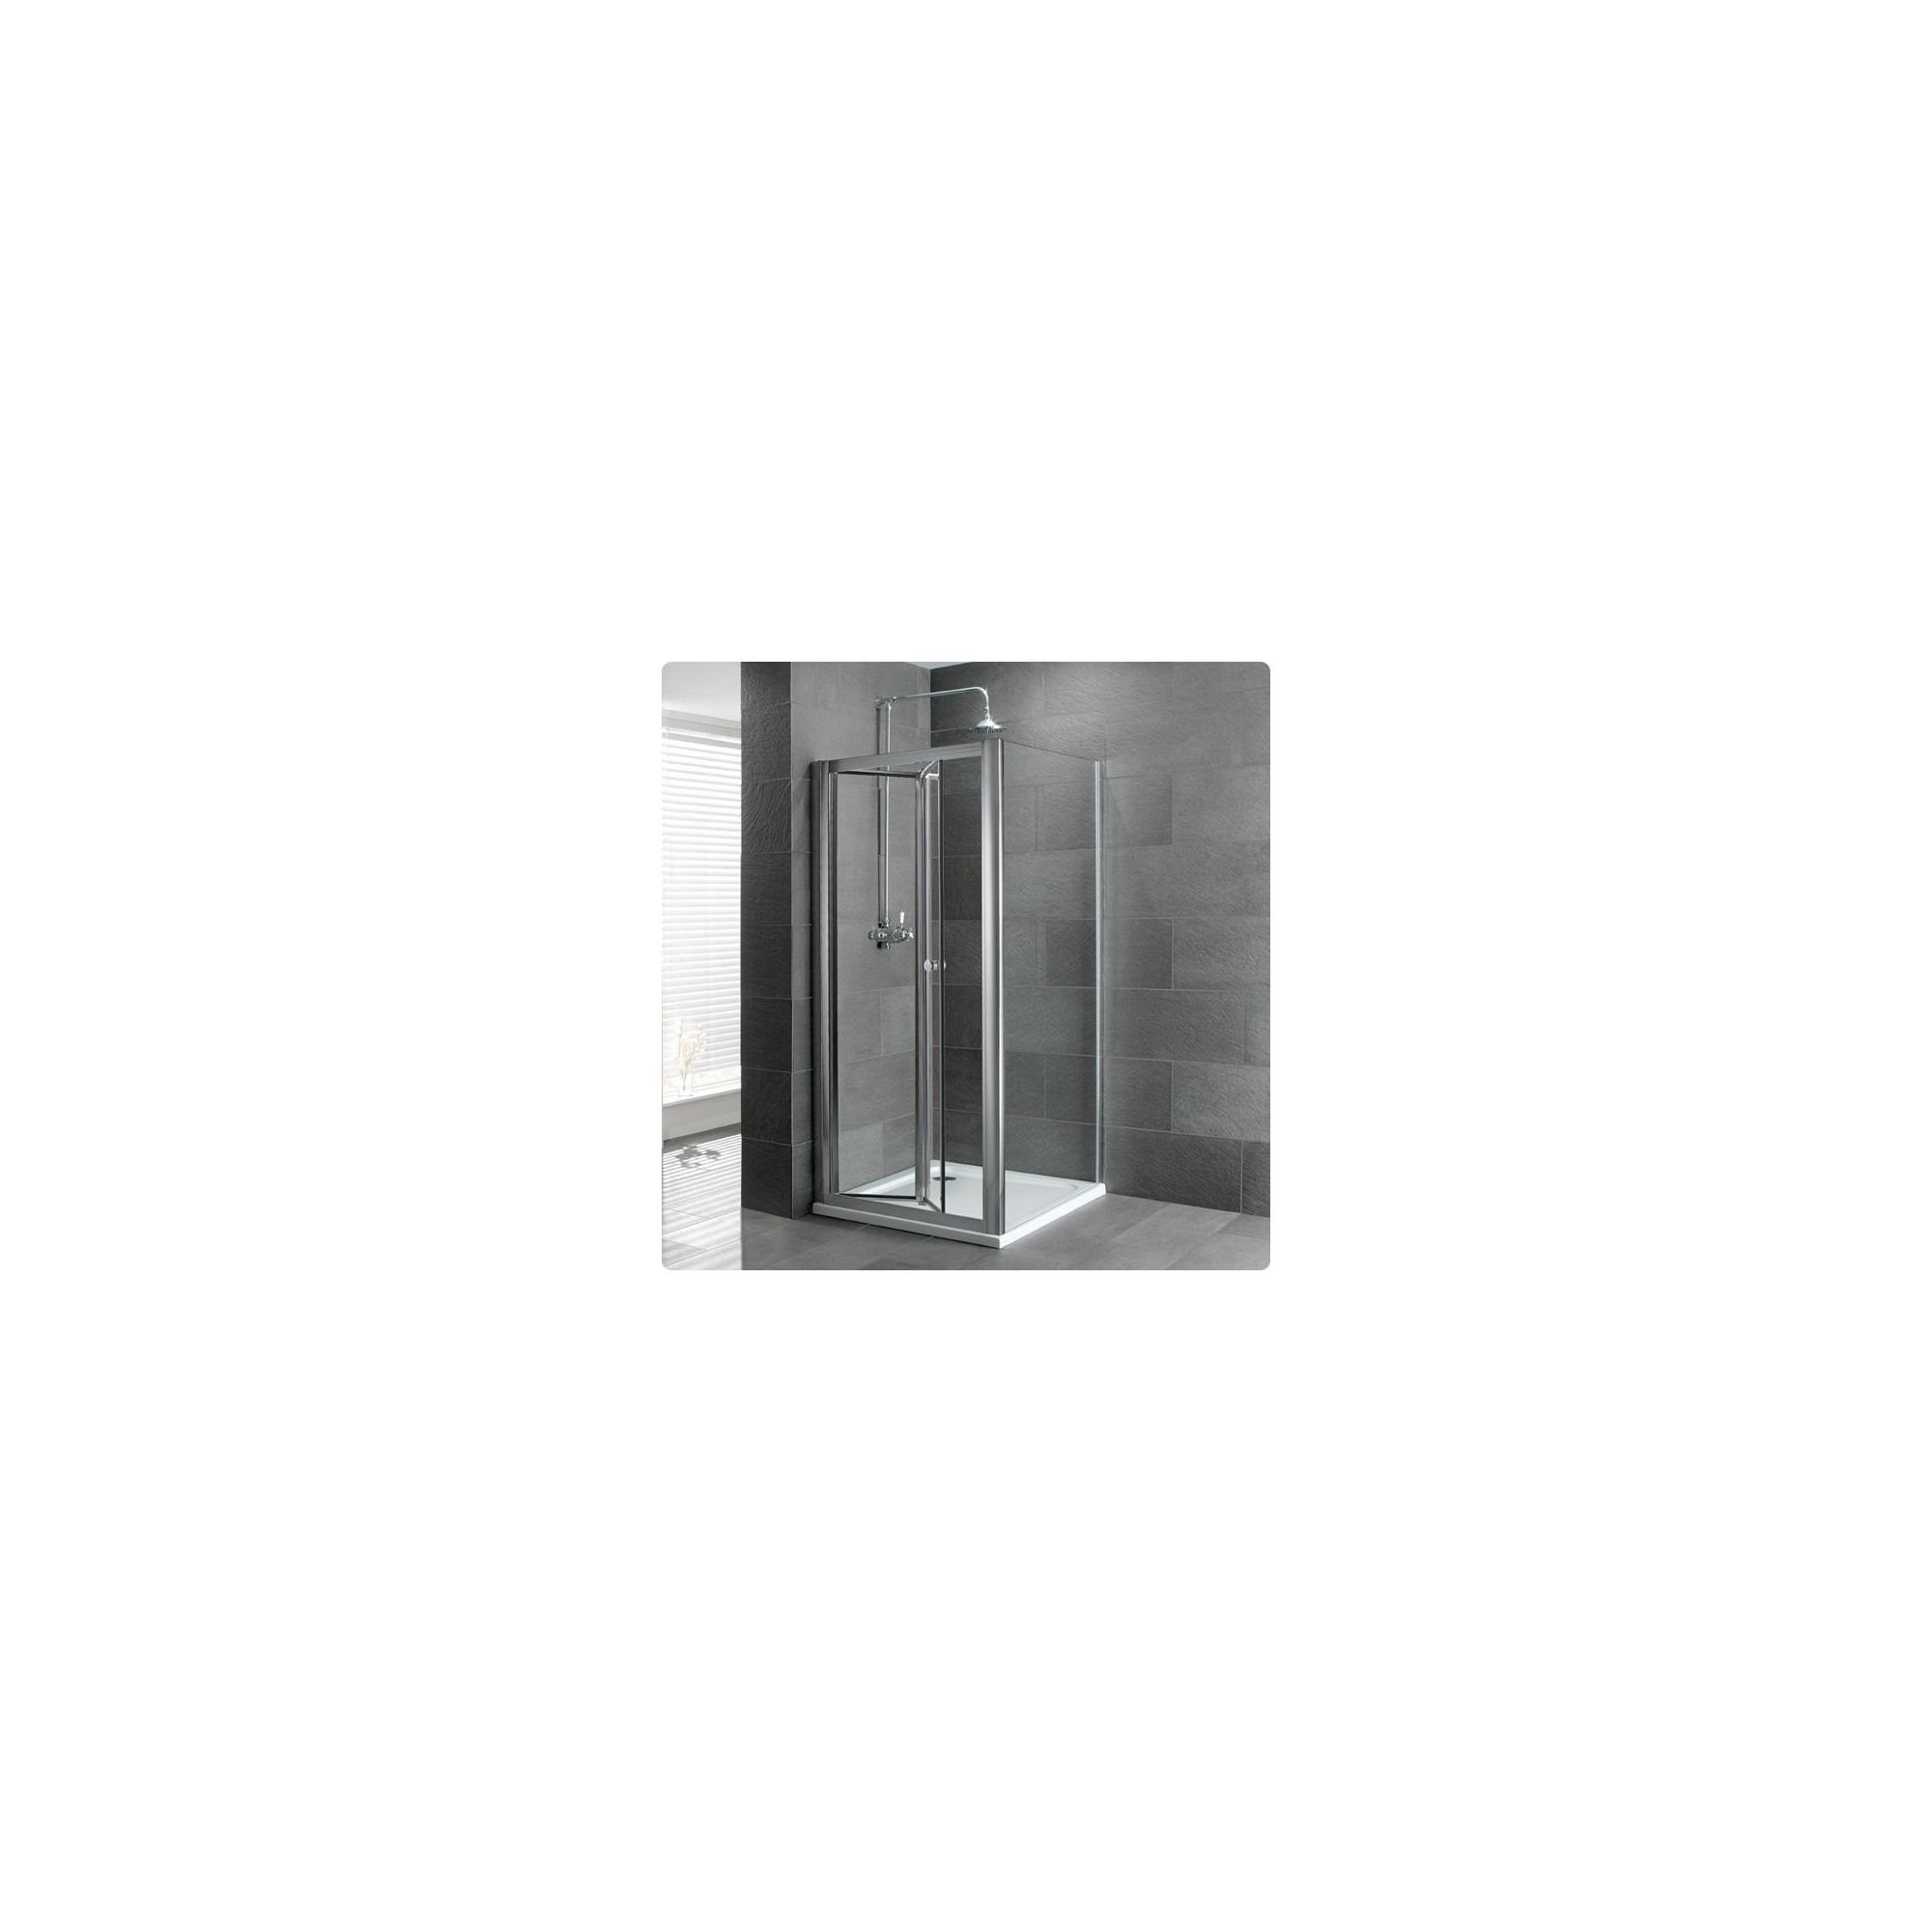 Duchy Select Silver Bi-Fold Door Shower Enclosure, 1000mm x 1000mm, Standard Tray, 6mm Glass at Tescos Direct